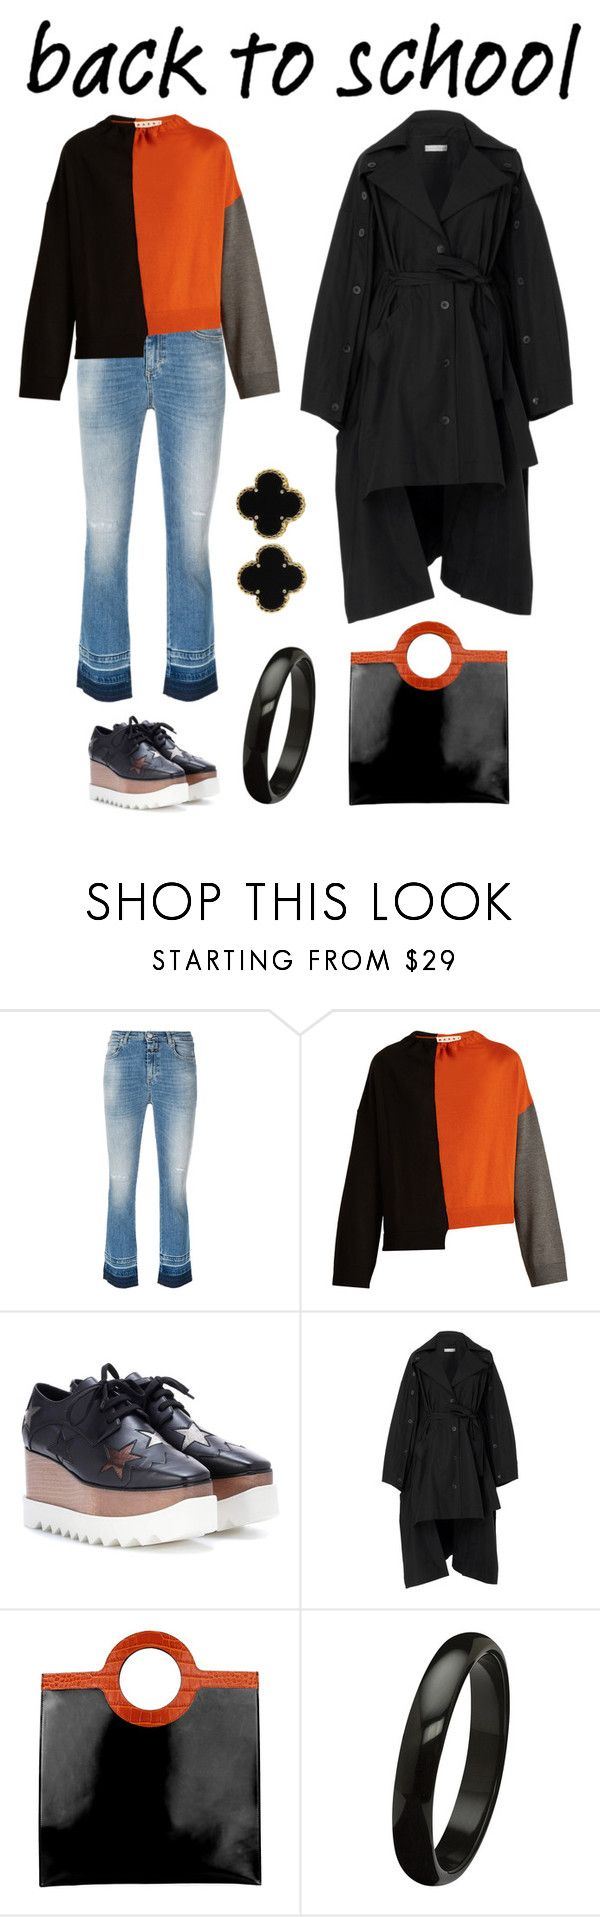 """Go Back-to-School Shopping!  College Days"" by karen-galves on Polyvore featuring Closed, Marni, STELLA McCARTNEY, palmer//harding, Givenchy, Van Cleef & Arpels and BackToSchool"